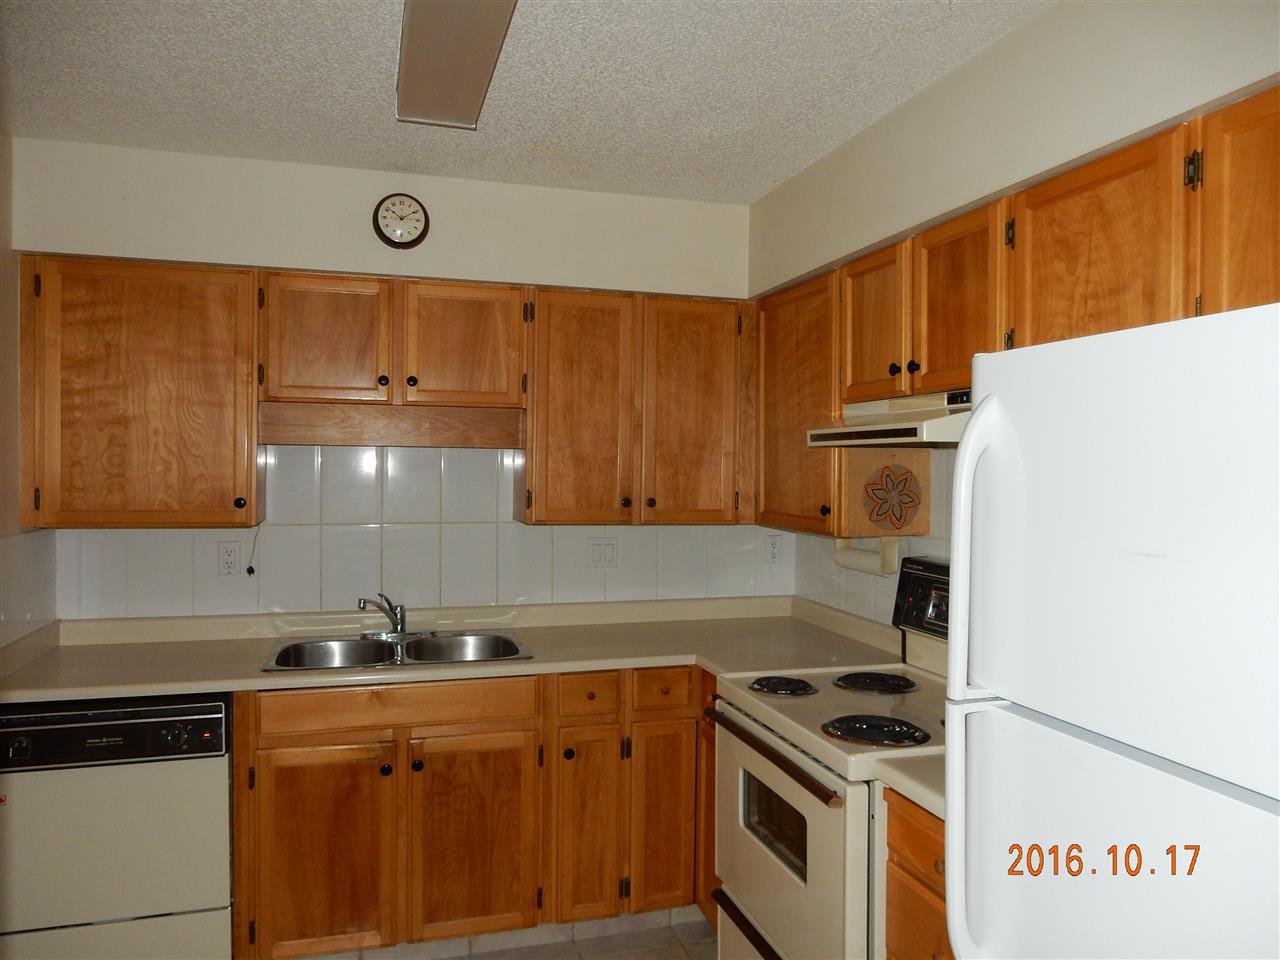 """Photo 4: Photos: 816 31955 OLD YALE Road in Abbotsford: Abbotsford West Condo for sale in """"Evergreen Village"""" : MLS®# R2117382"""